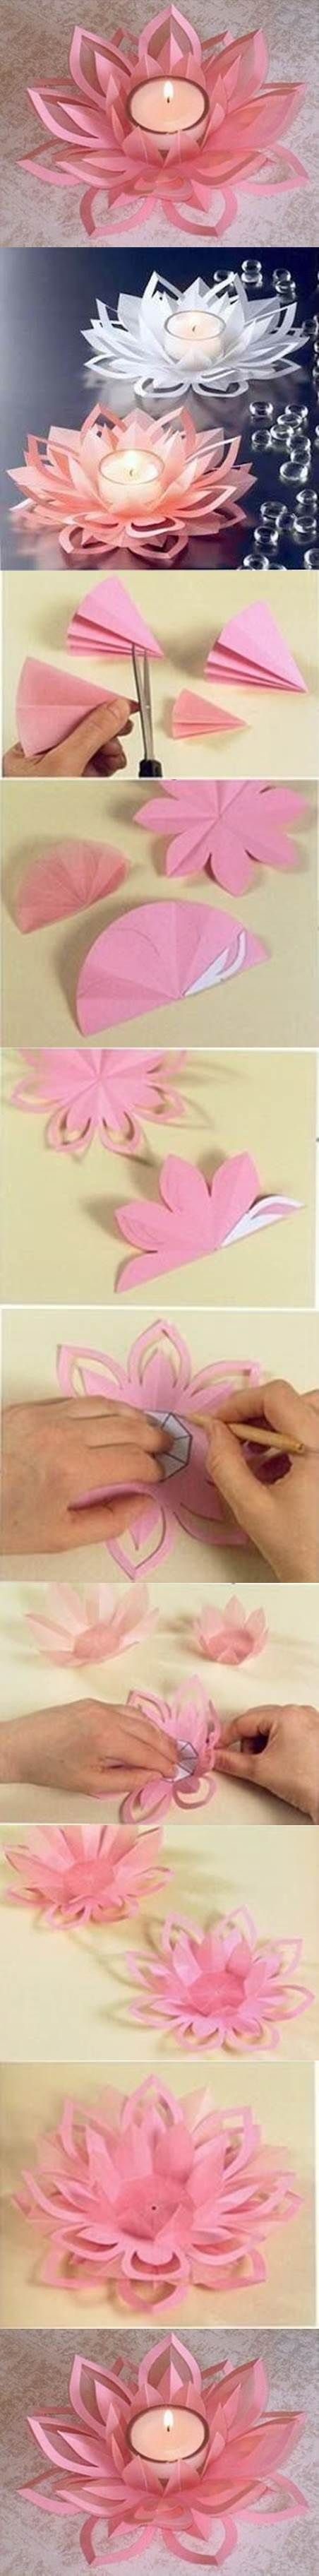 DIY Paper Lotus Candlestick 2 Wonderful DIY Beautiful  Lotus Candlestick